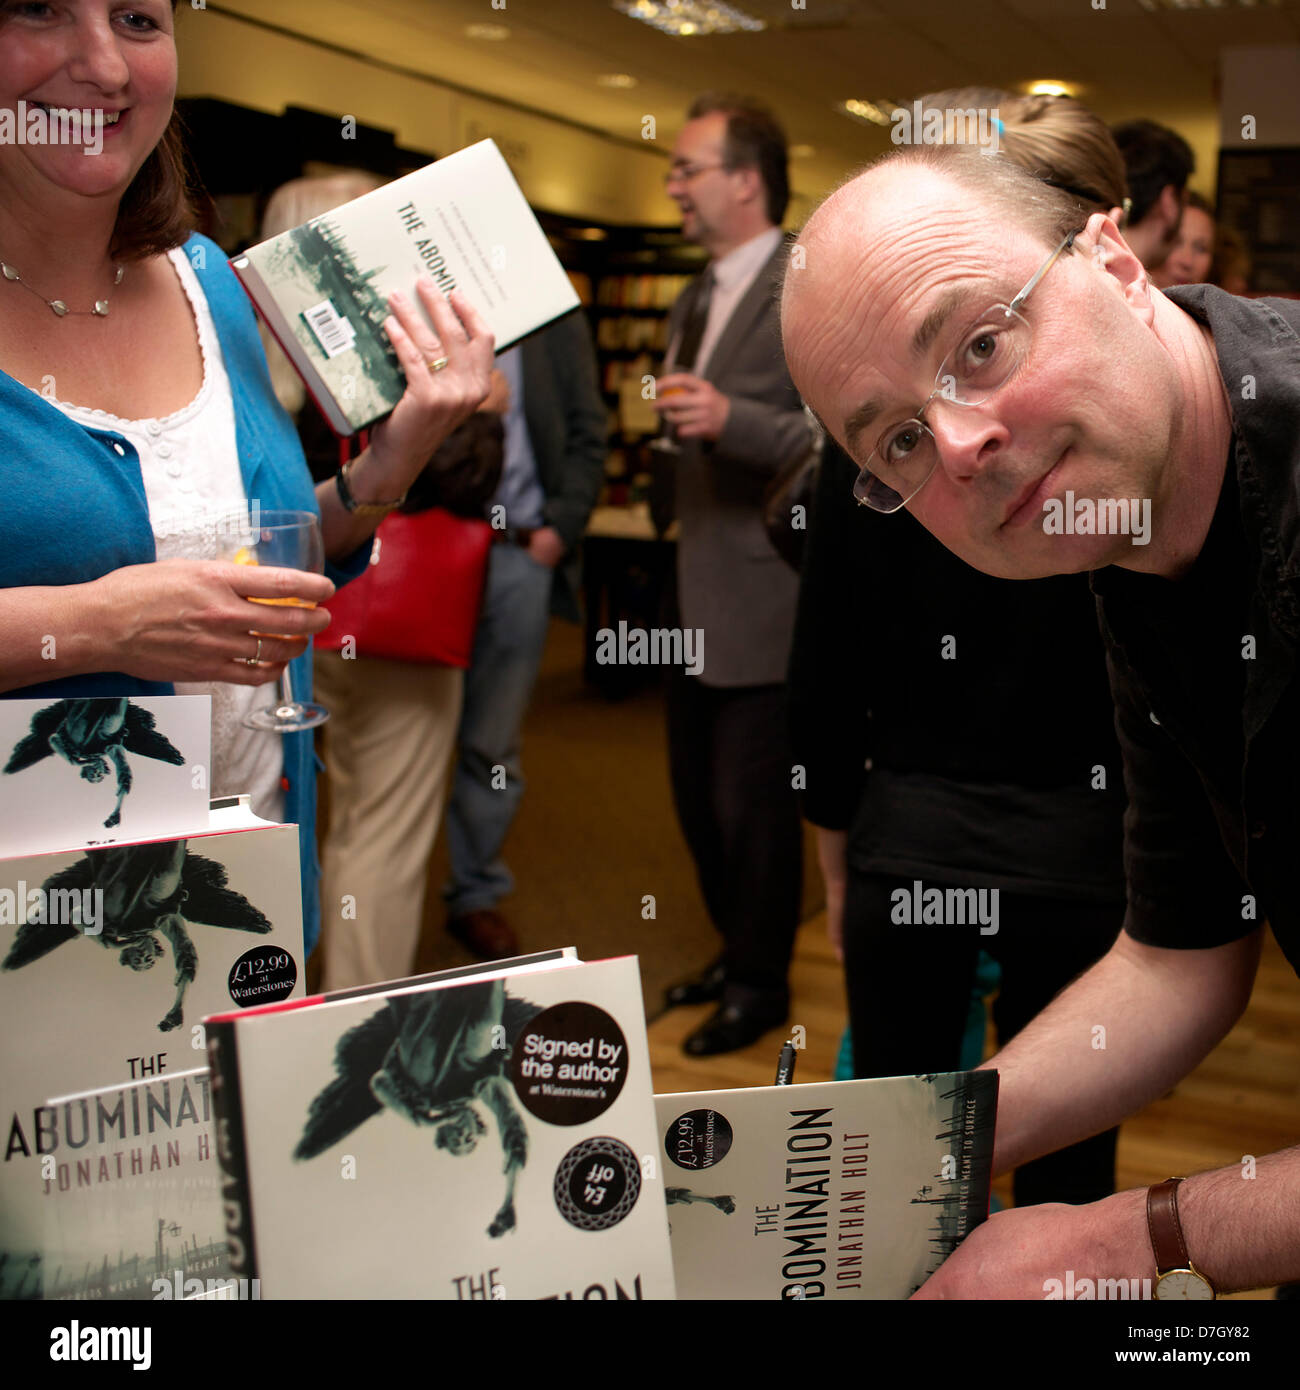 Oxford, UK. 7th May, 2013. Author Jonathan Holt signs copies of his new book The Abomination at Waterstones Bookshop, - Stock Image